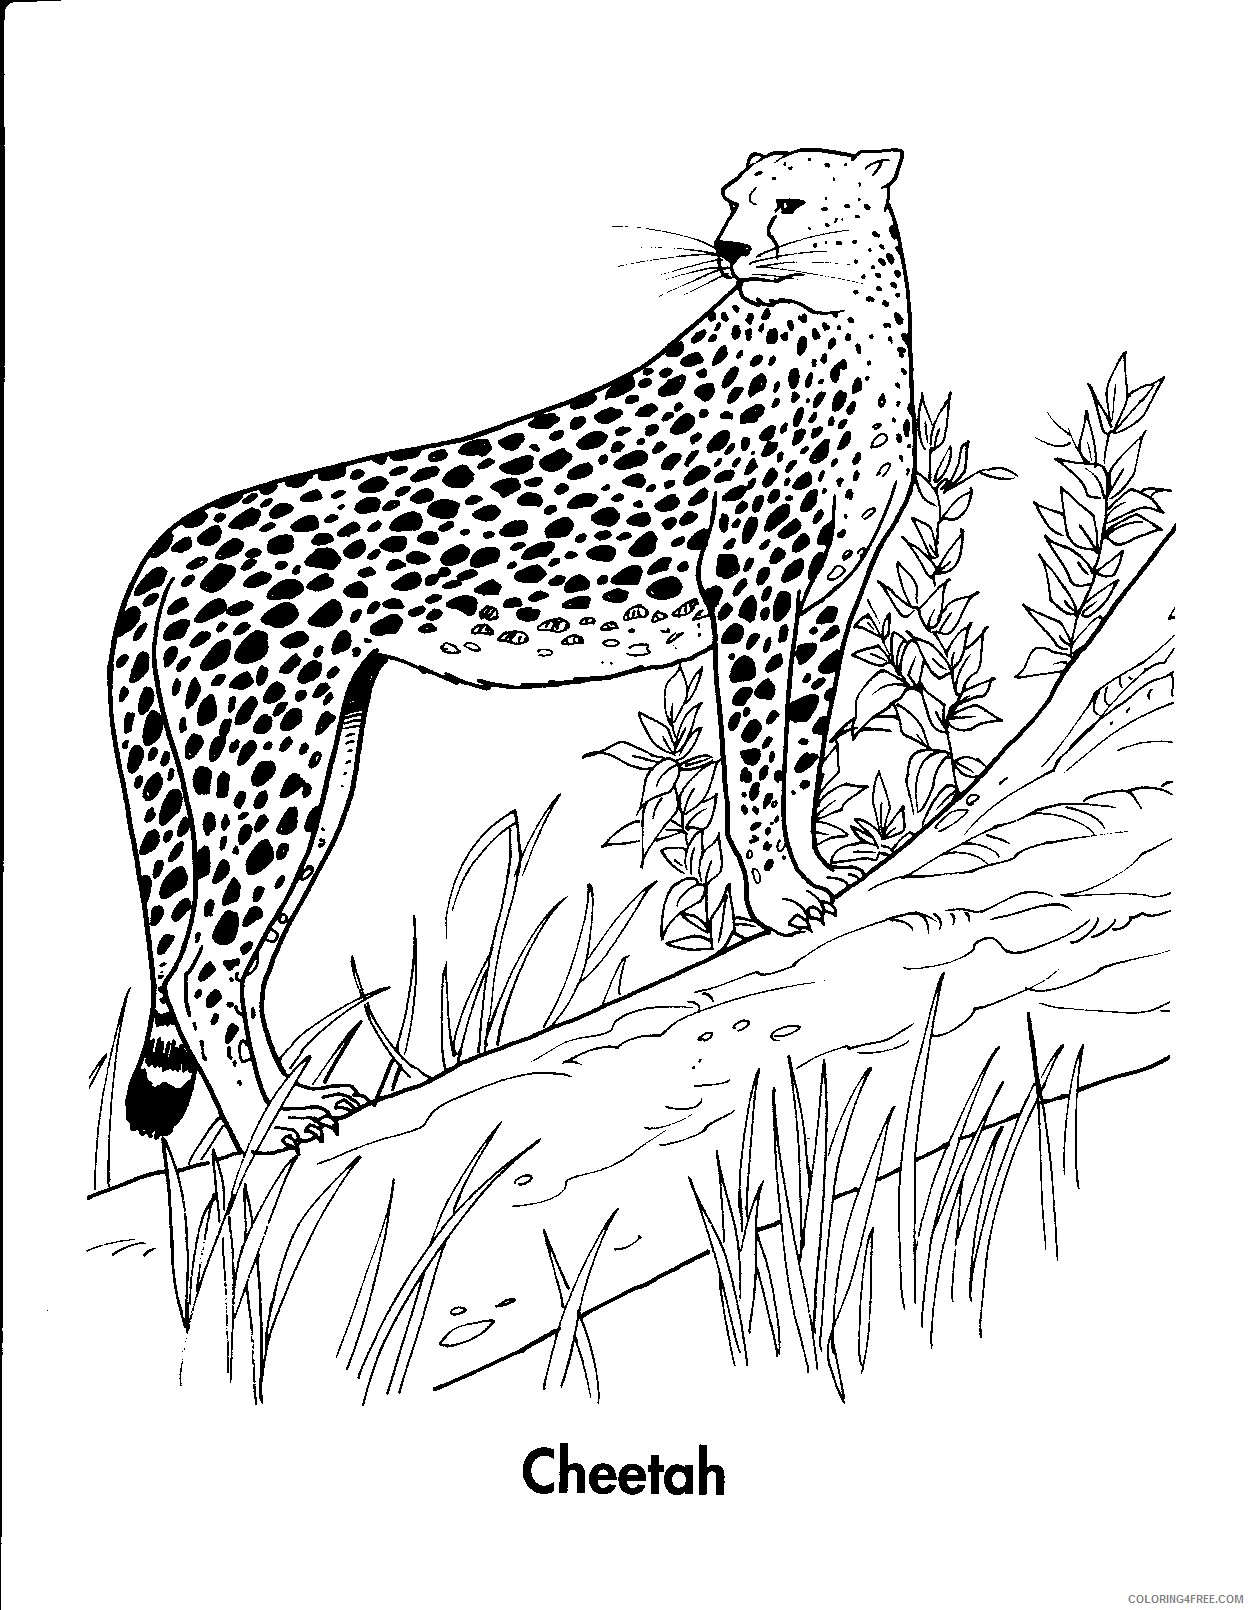 cheetah coloring pages standing on tree Coloring4free